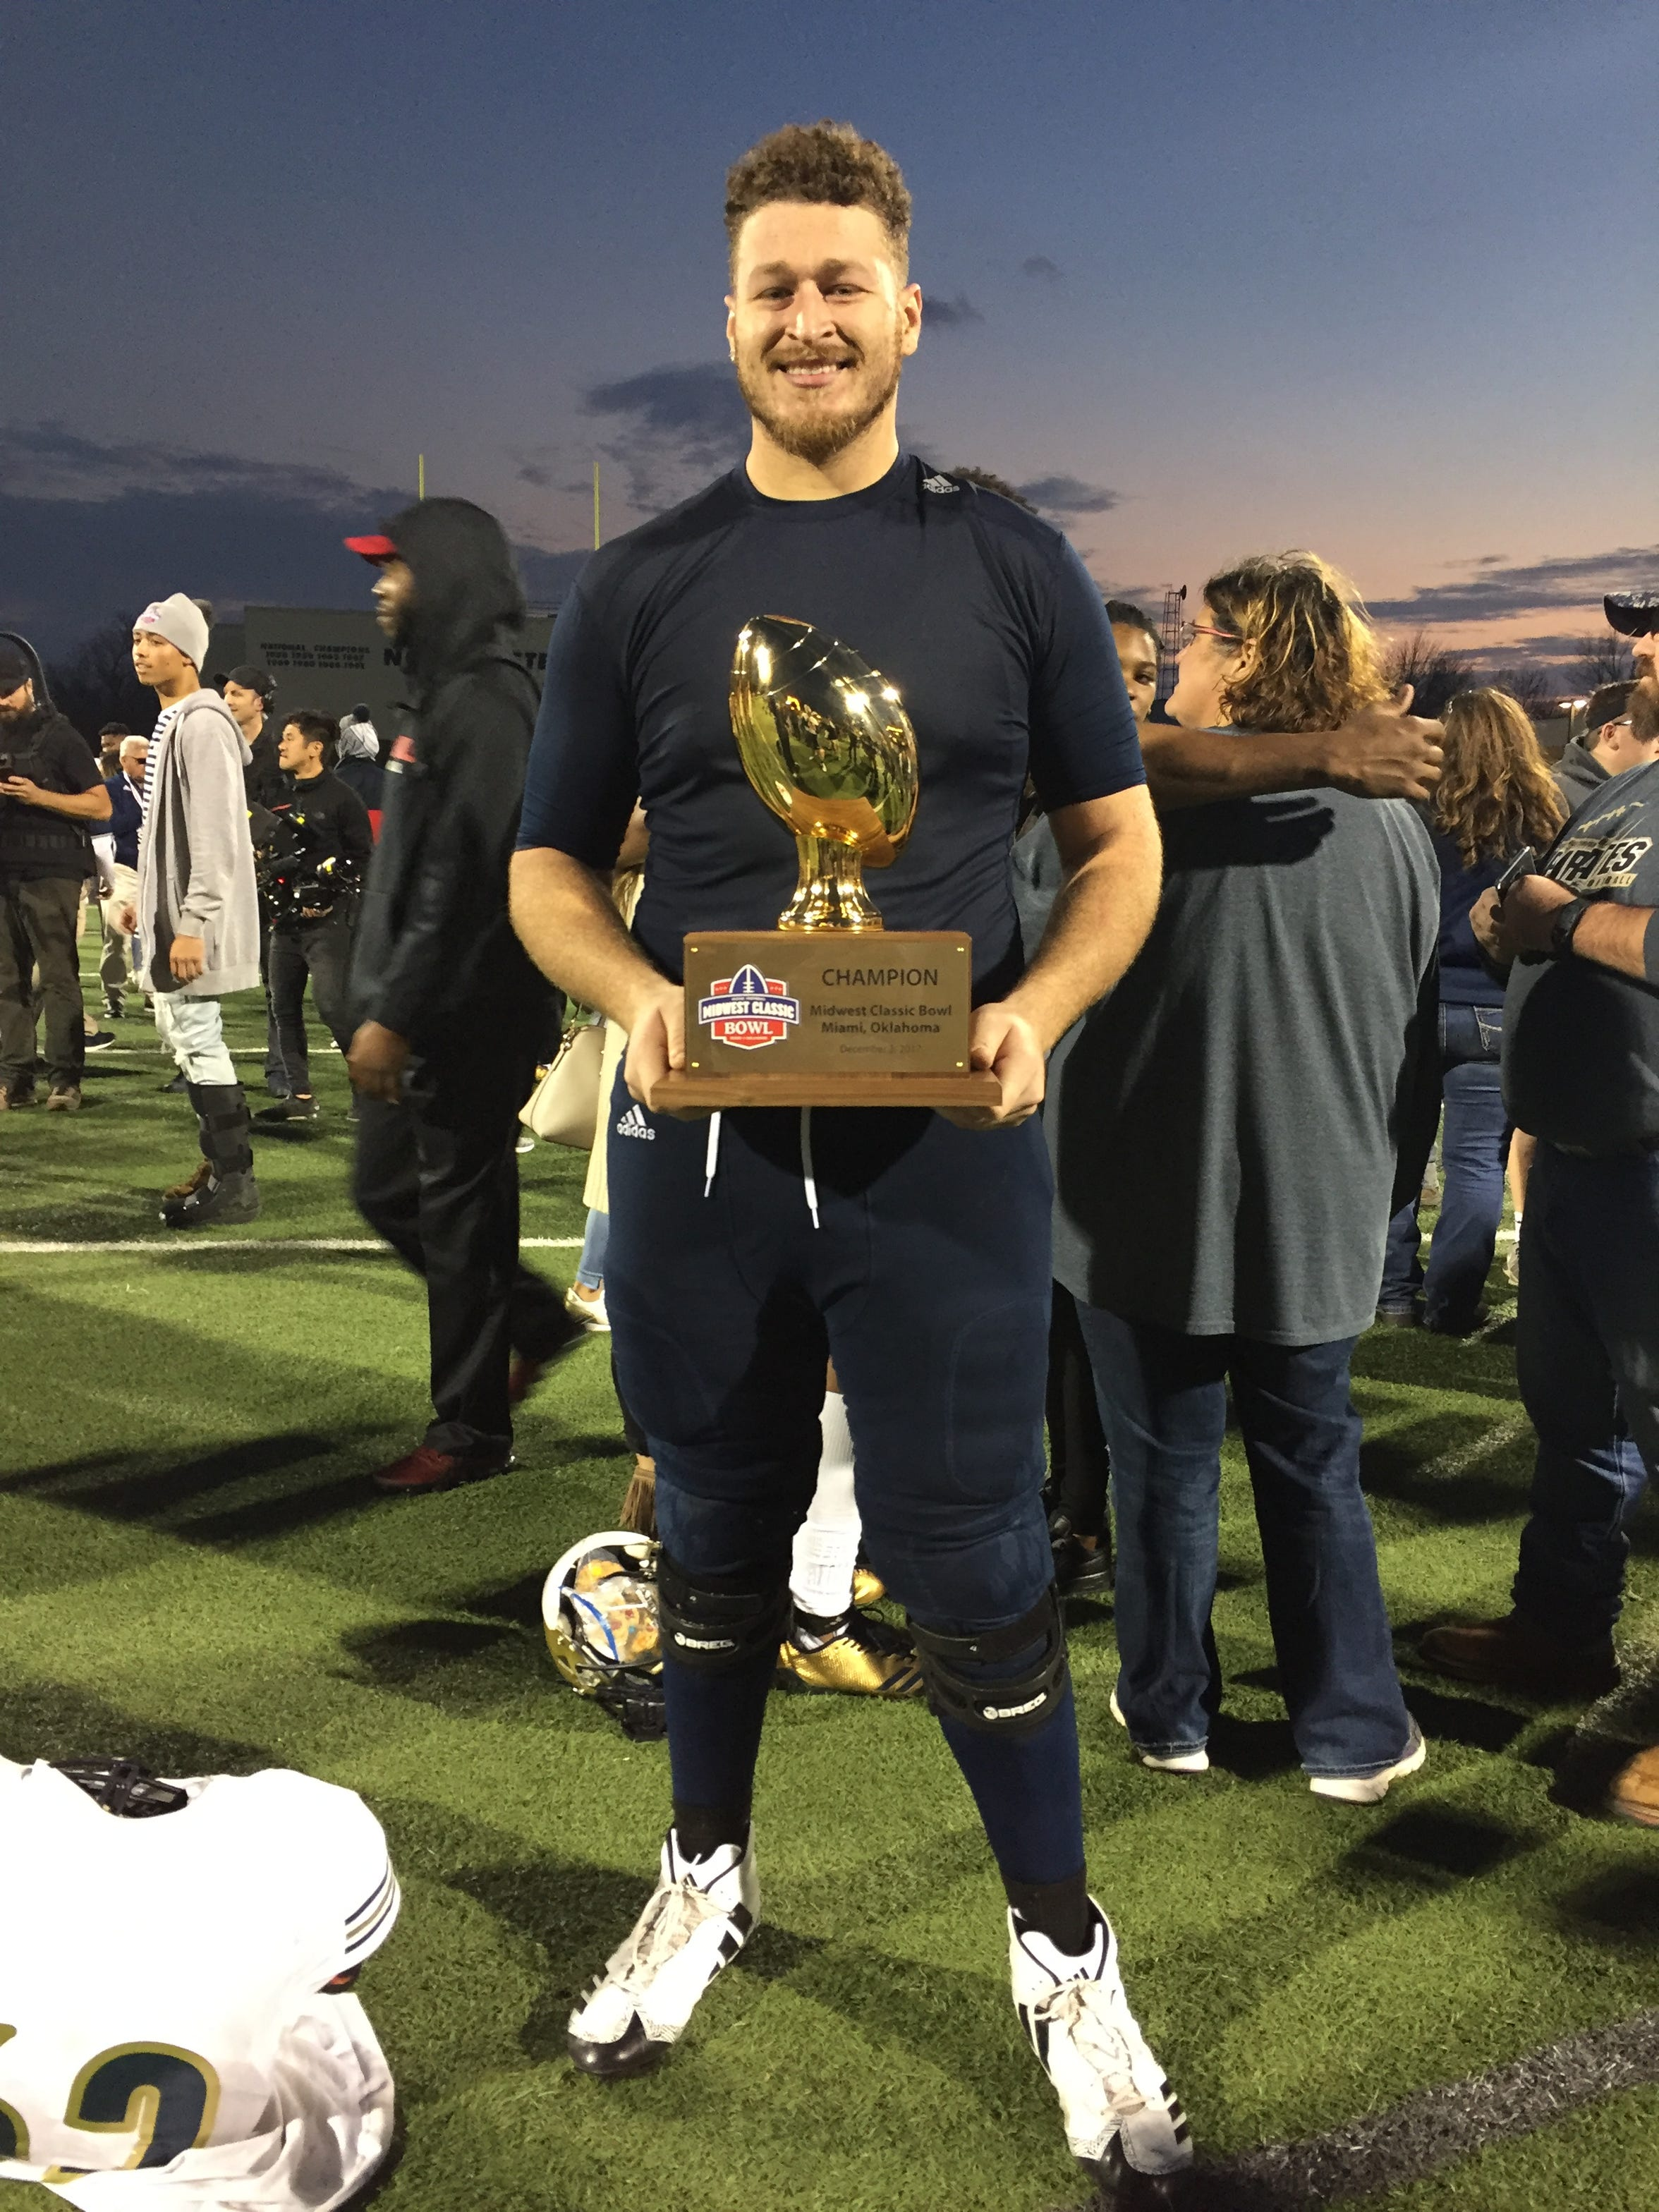 Brishaun Horne poses with a trophy after winning a bowl game with Independence Community College in 2017.